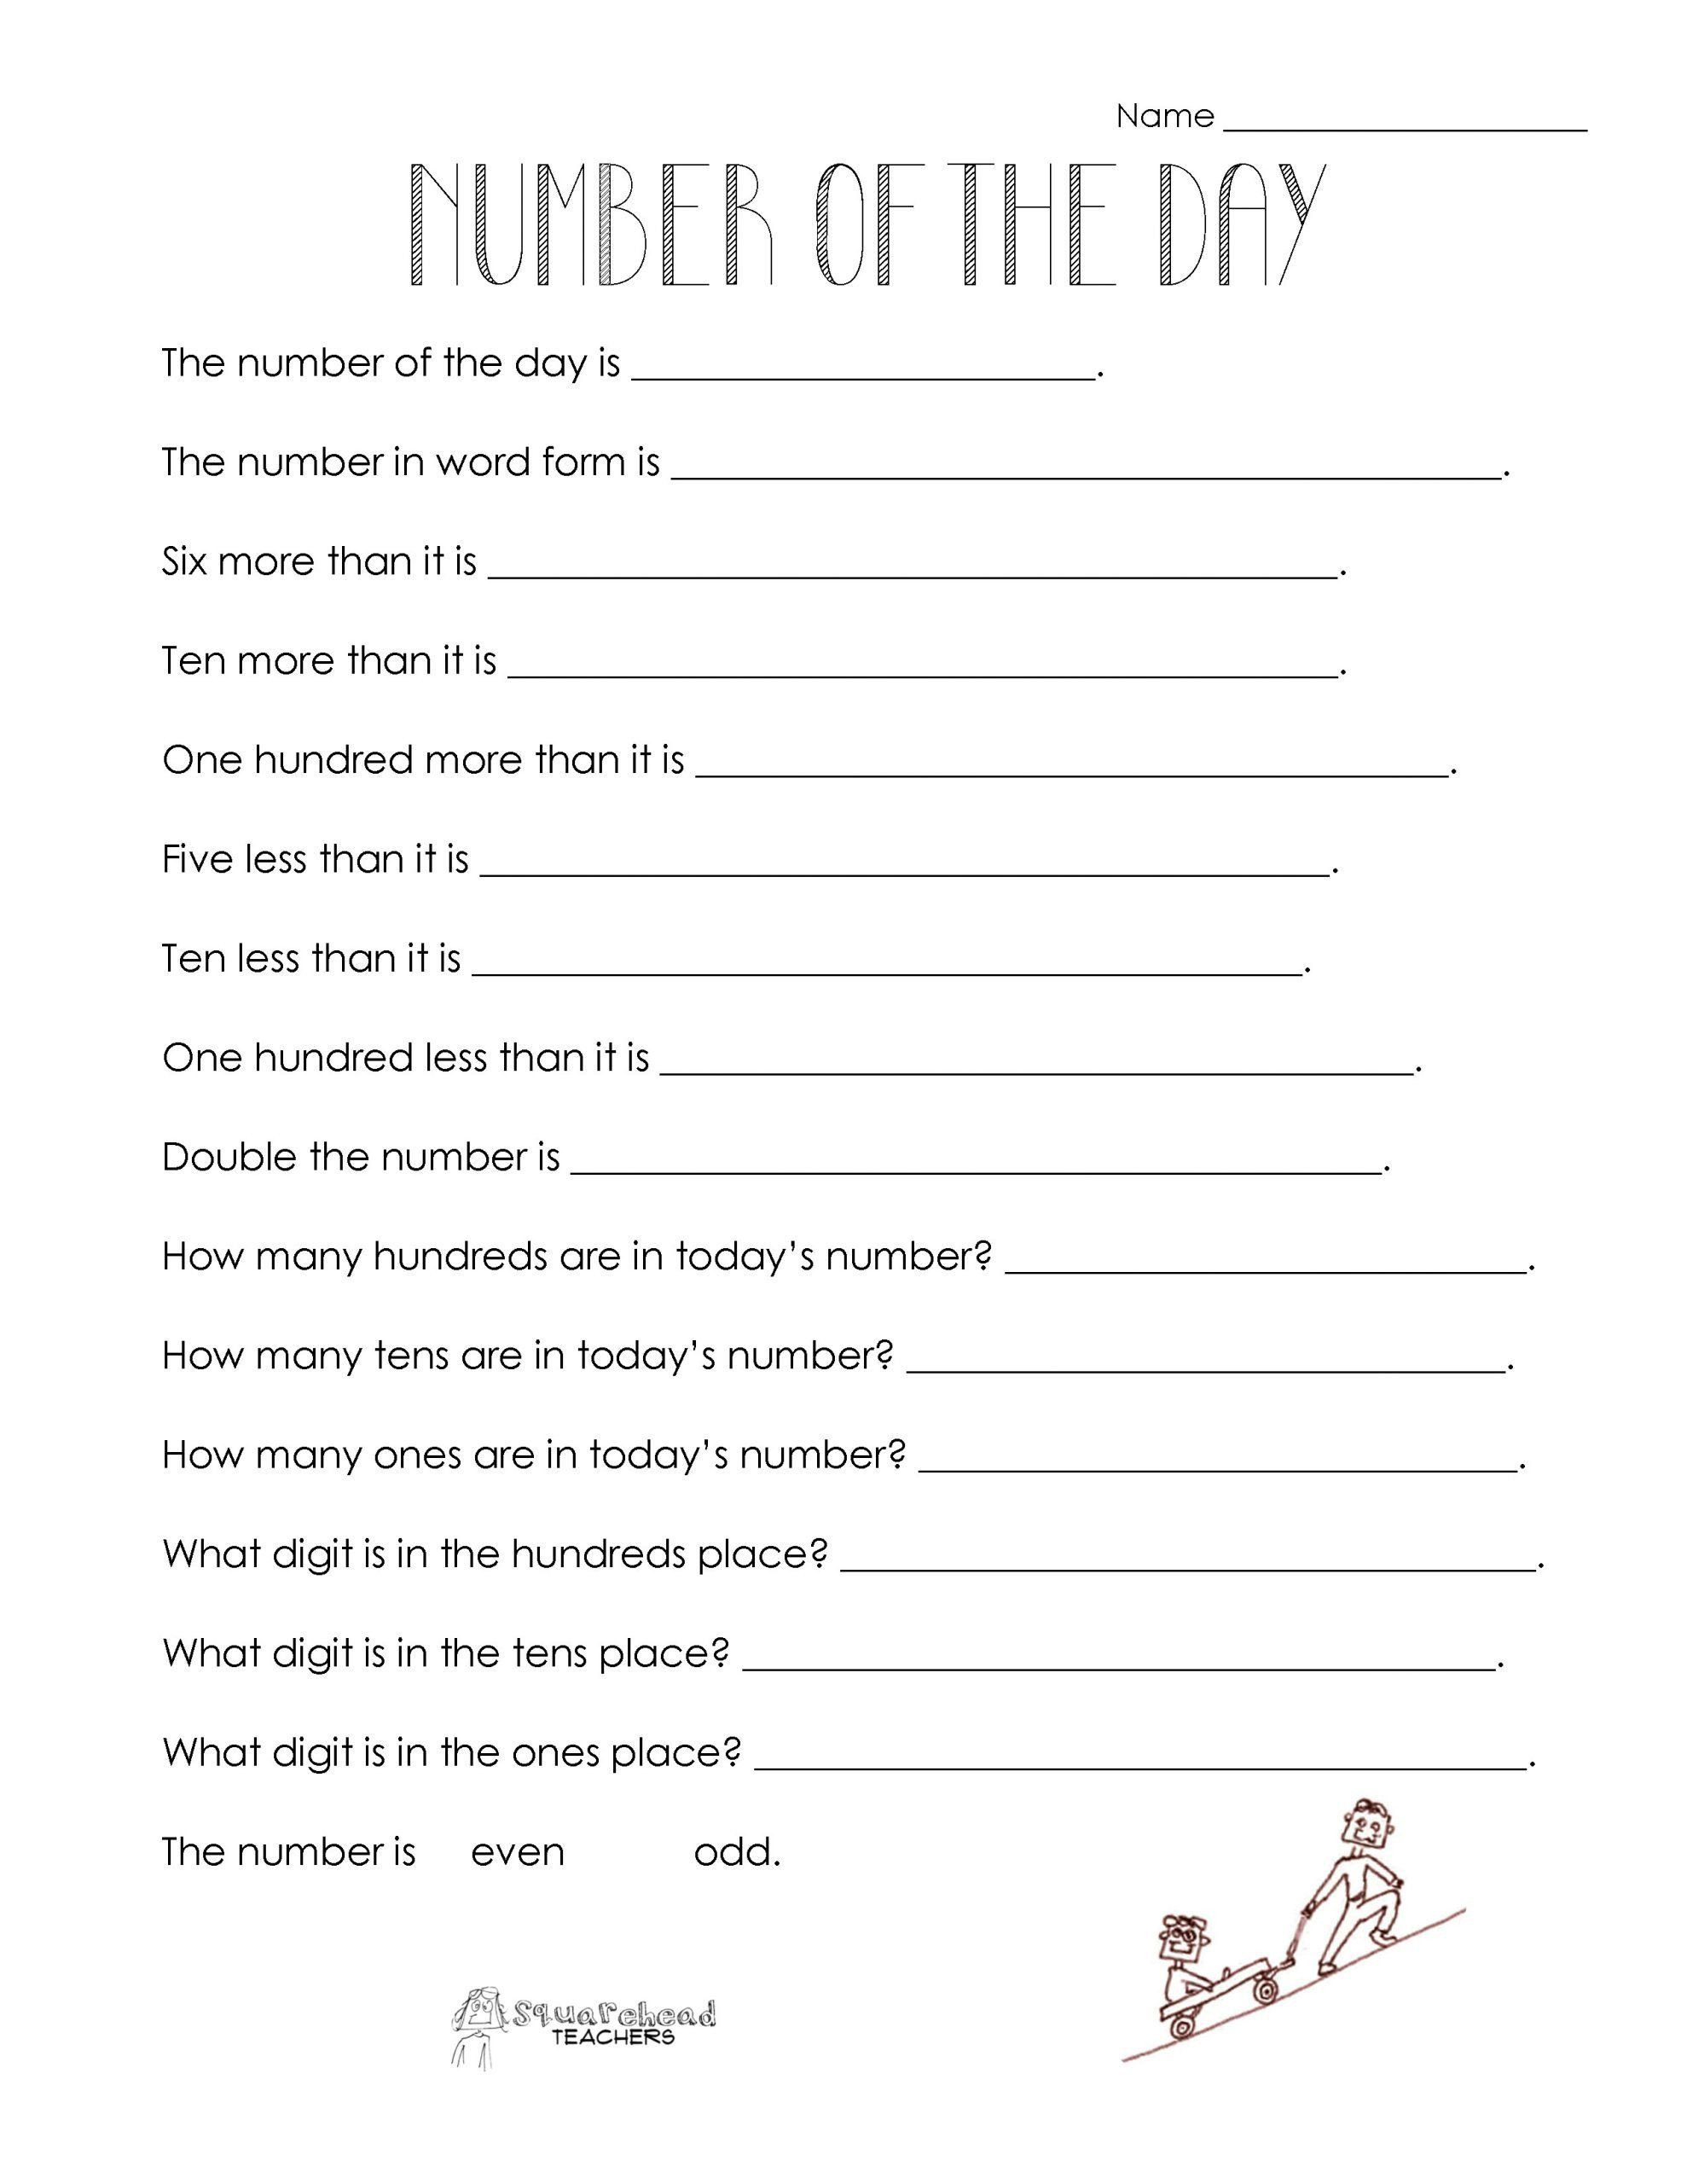 Sequencing Worksheets for 2nd Grade Pin On 1st Grade Worksheets & Free Printables